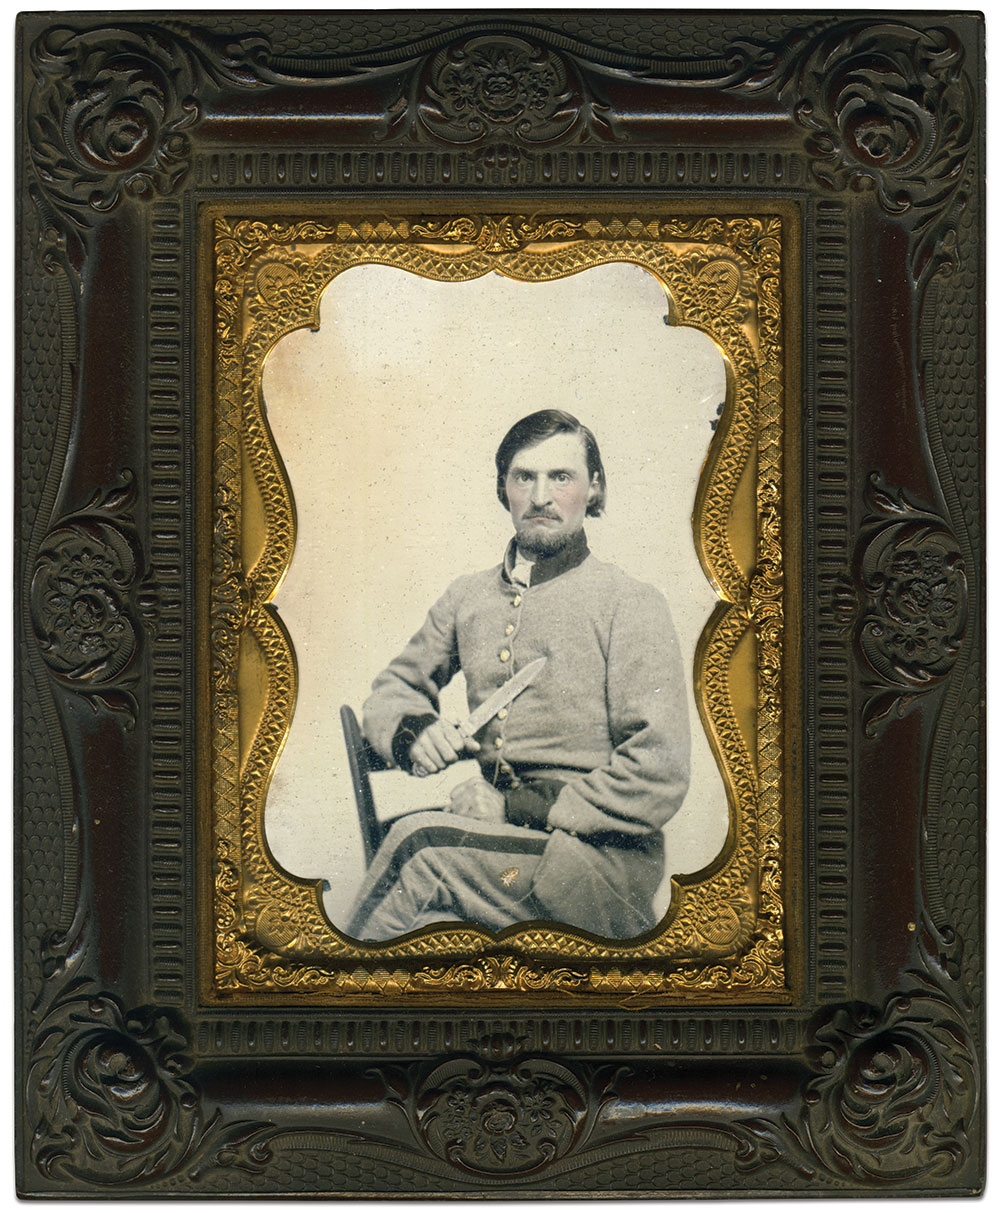 Quarter-plate ambrotype by an anonymous photographer. Richard J. Ferry Collection.